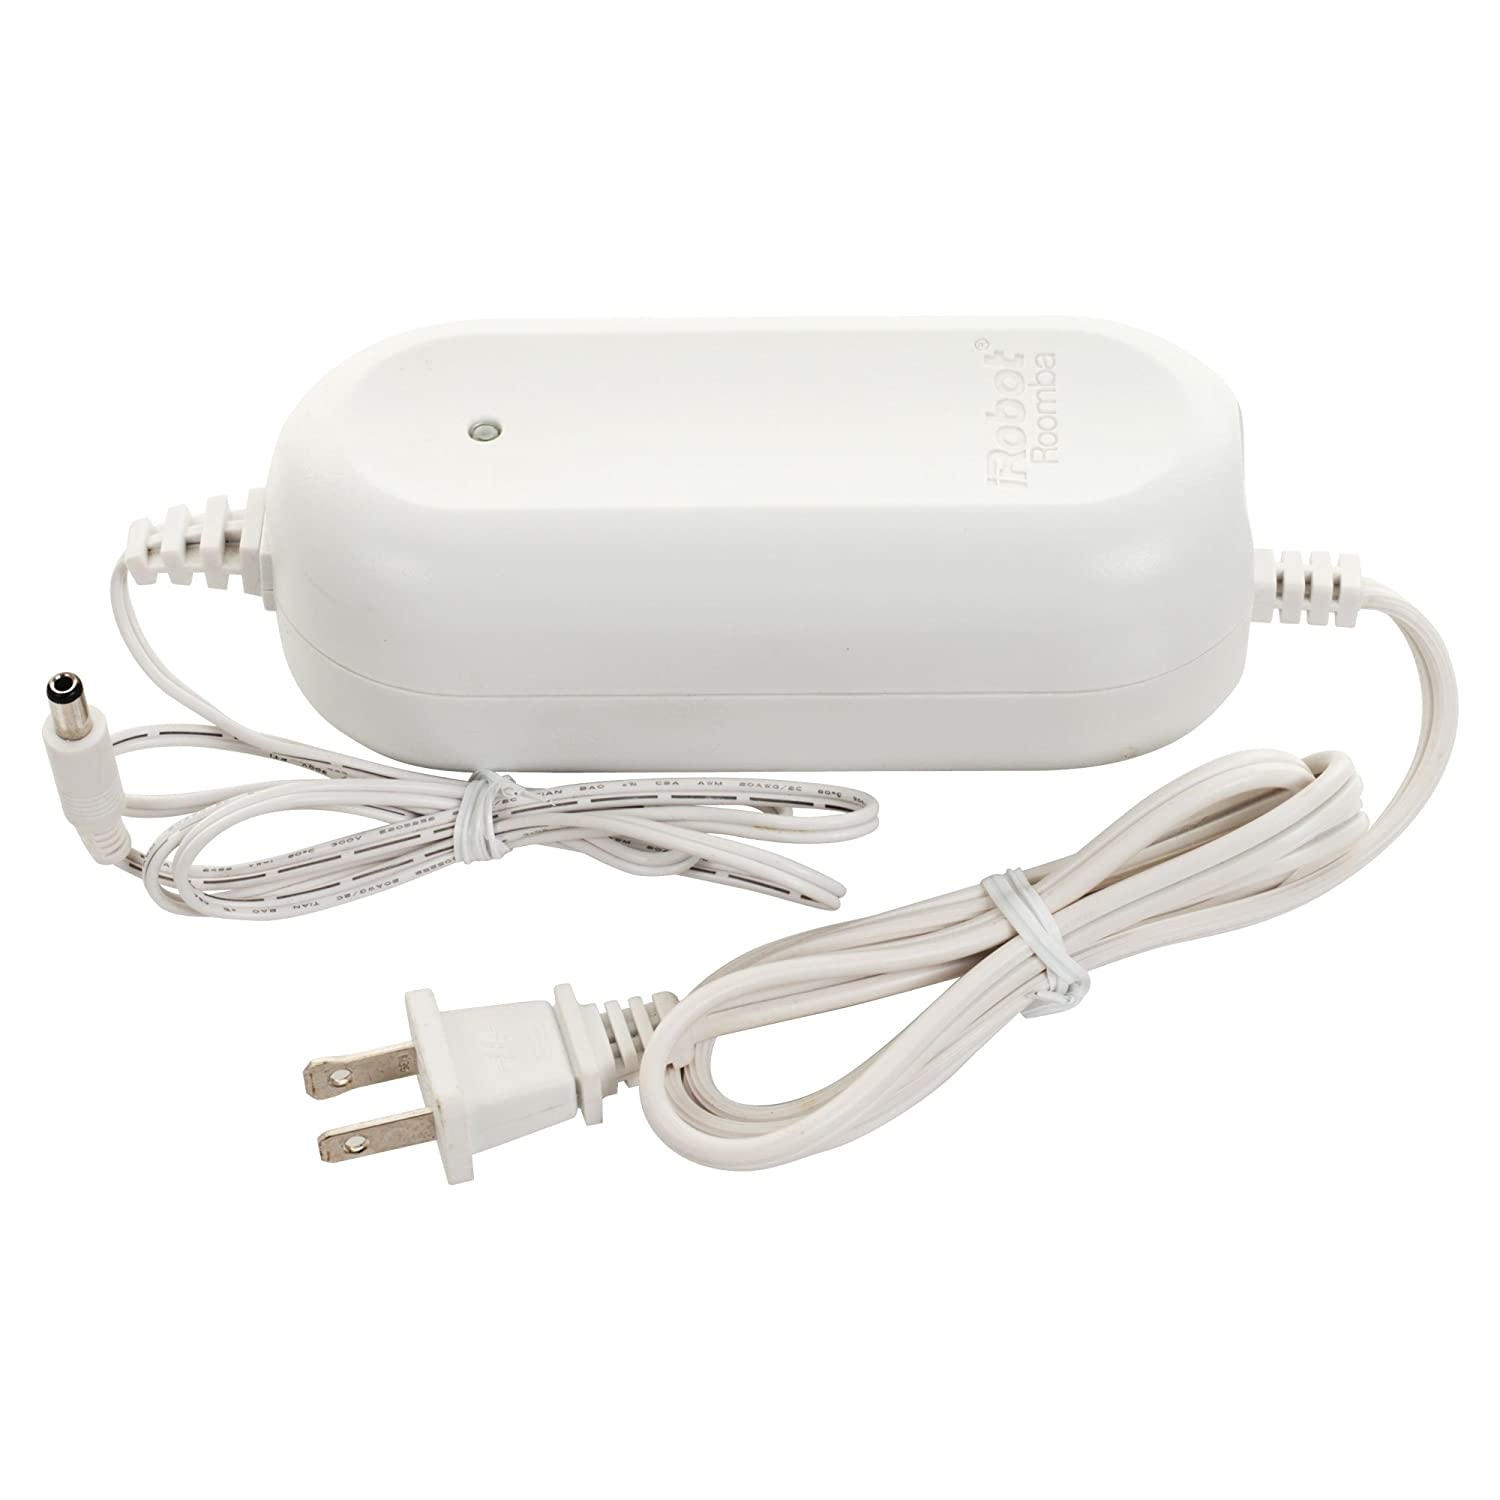 iRobot 72-560CH Roomba 500 Series A/C Charger, White